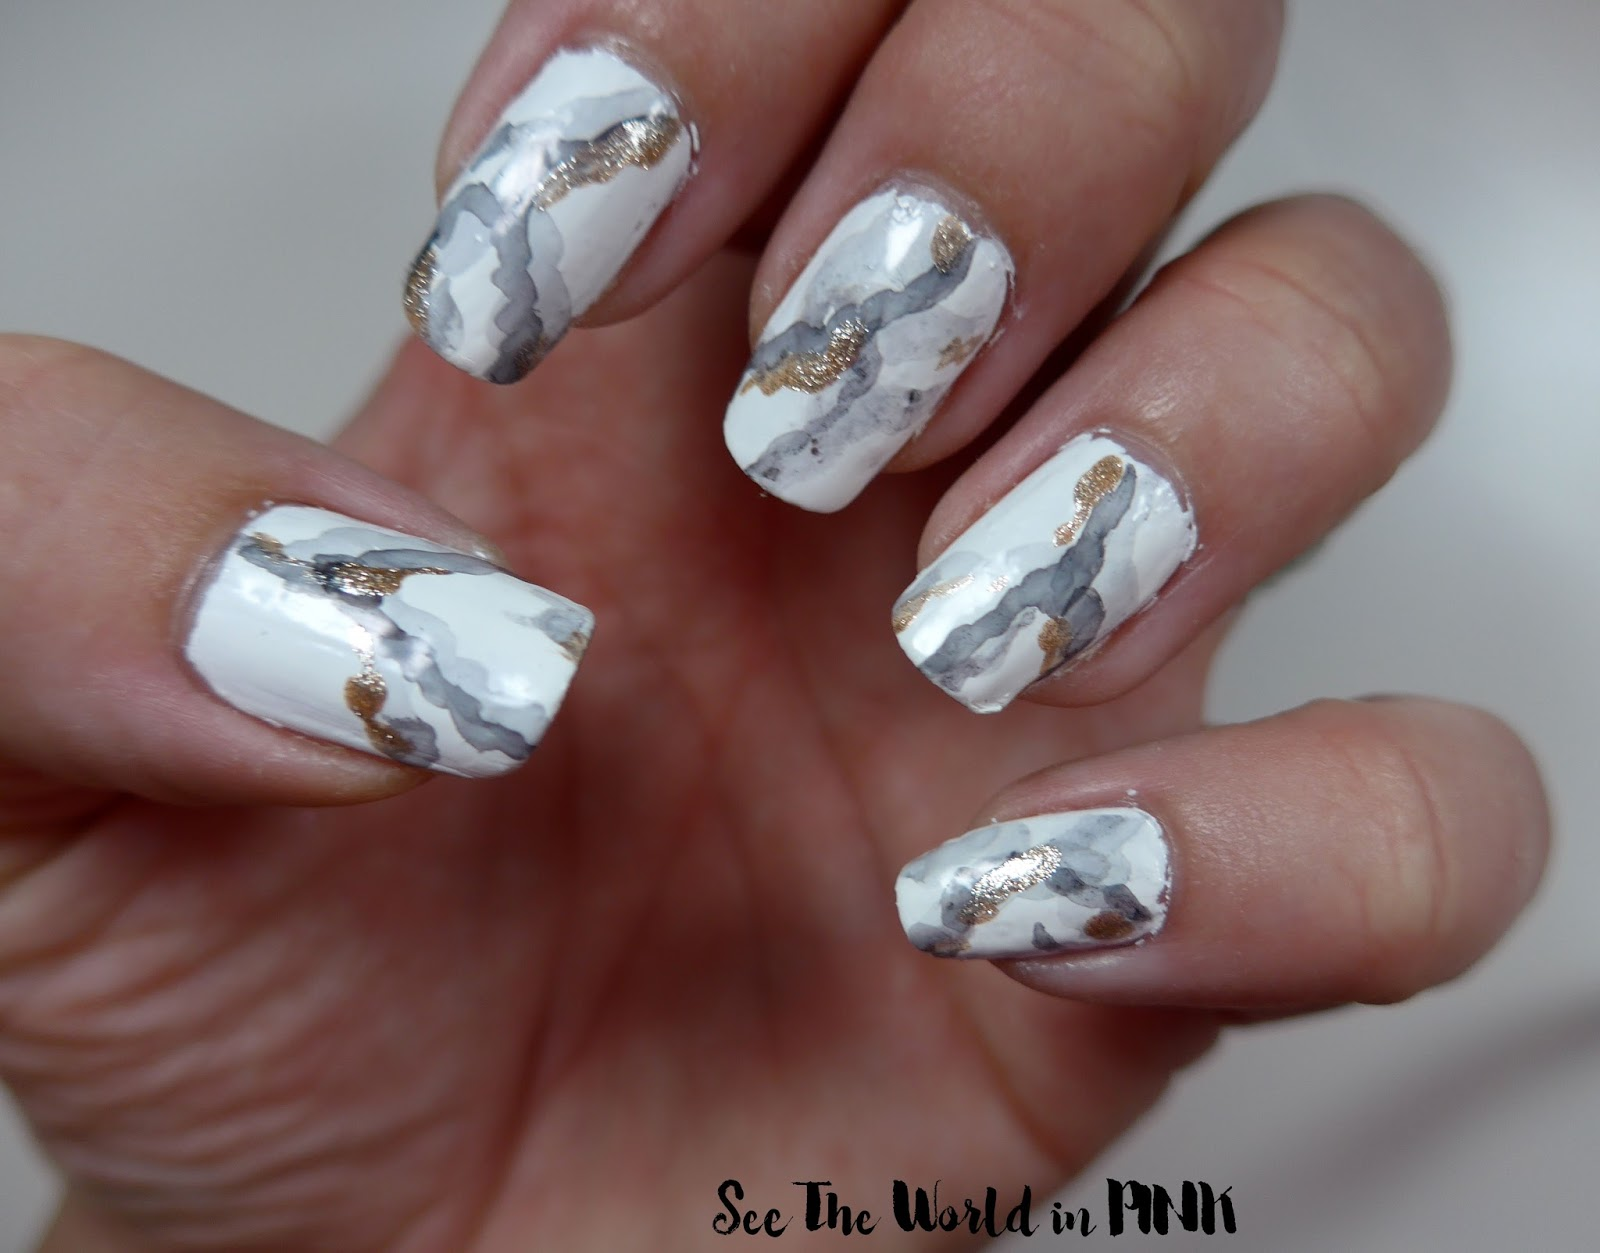 Manicure Tuesday - Stone Marble Nail Art!